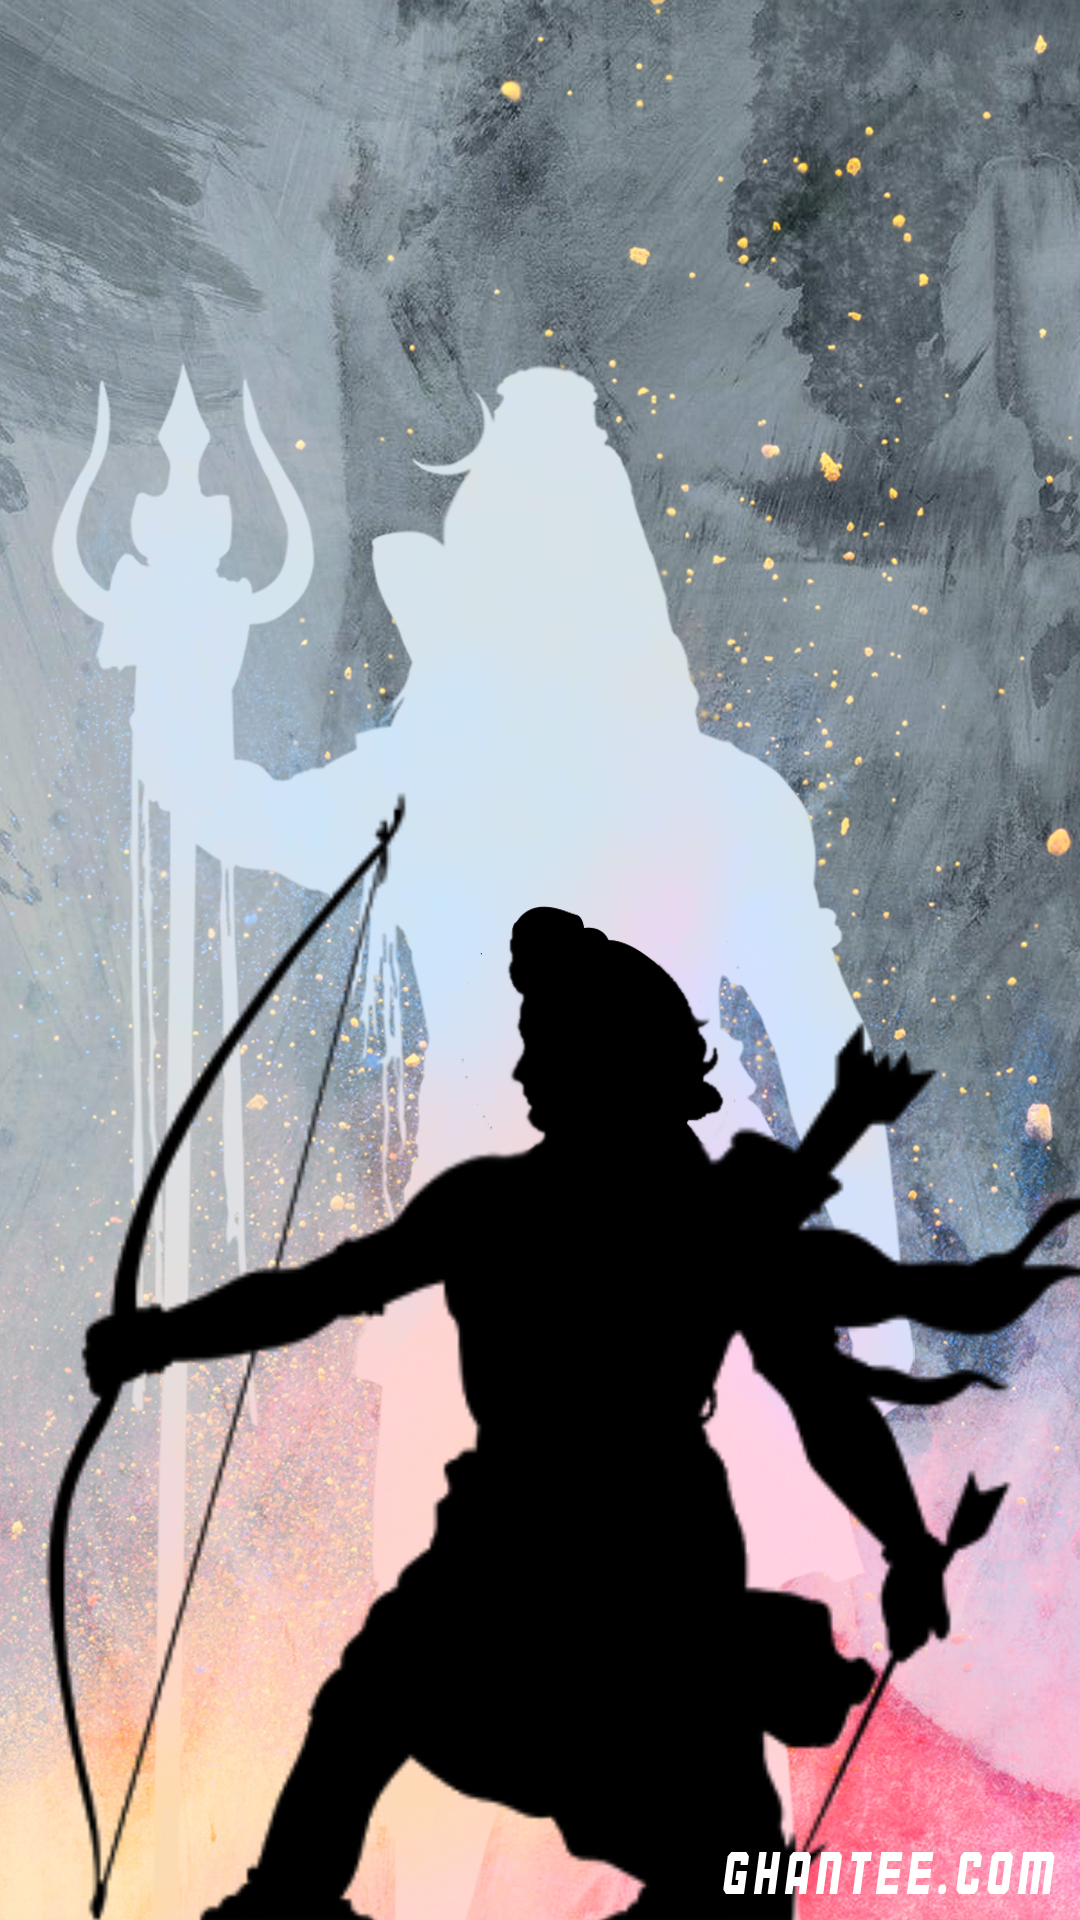 lord shiva and shri ram hd phone wallpaper | 1080 x 1920